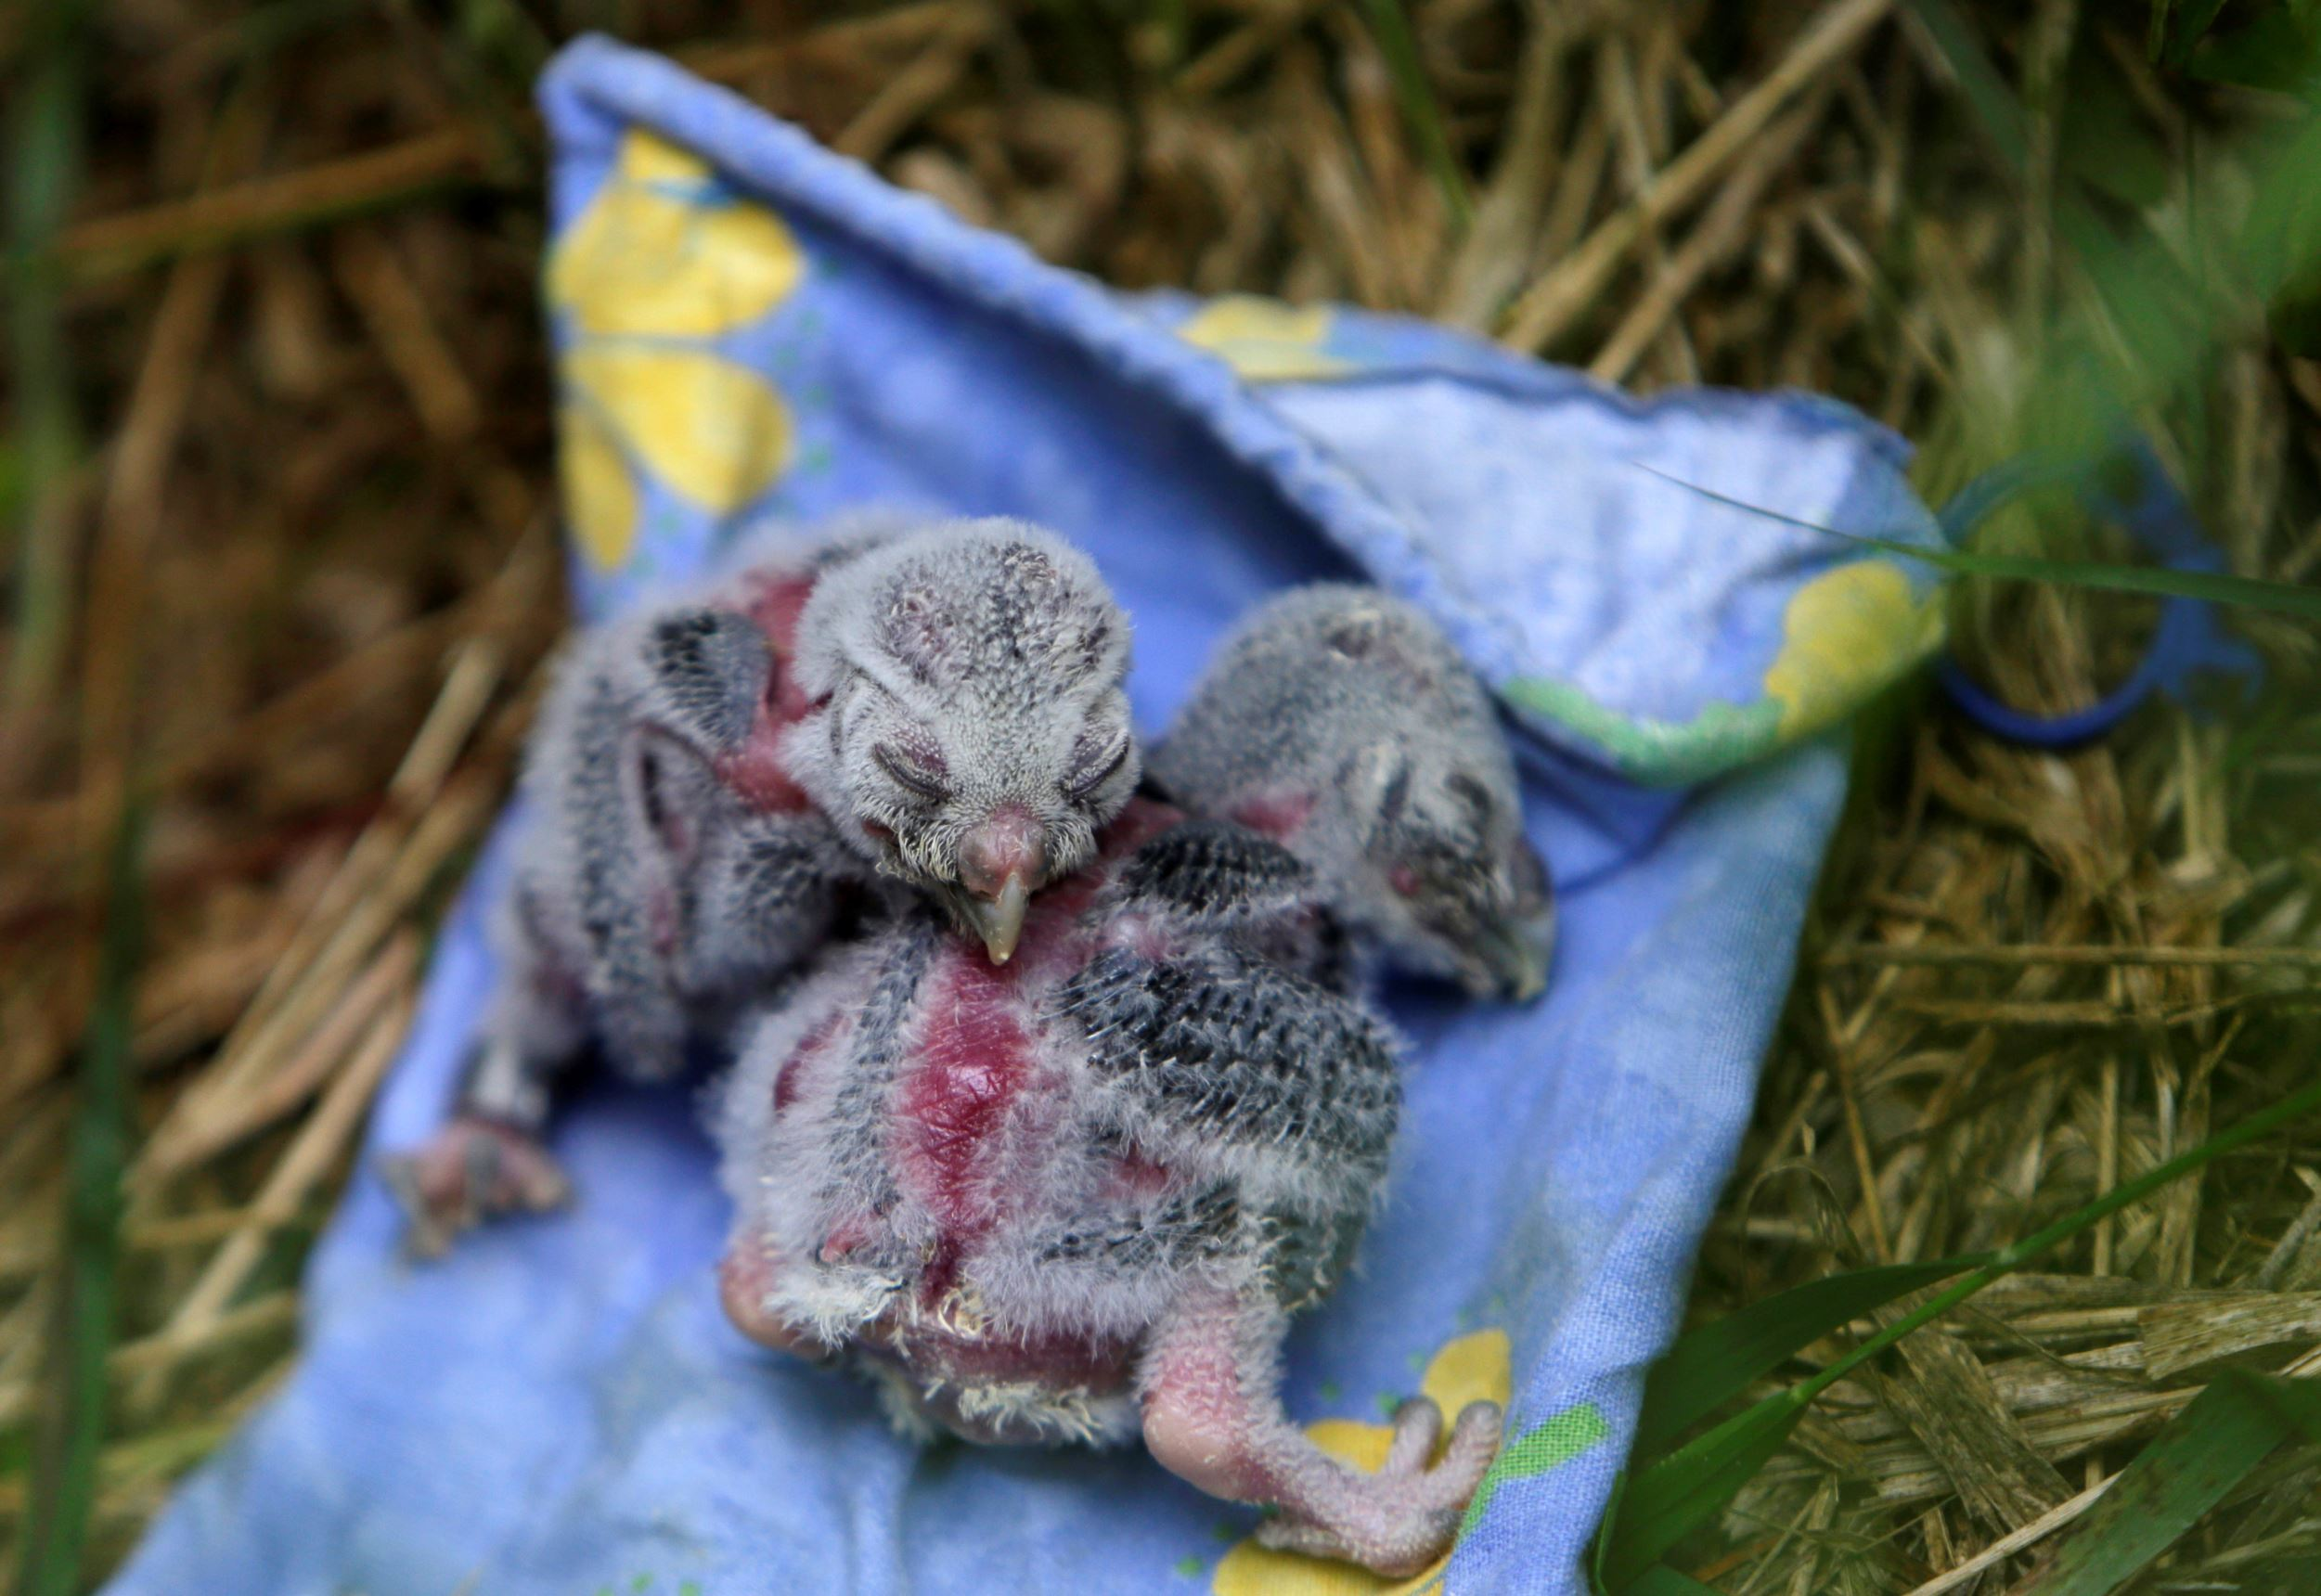 """Слайд 30 из 67: Two Boreal owl chicks rest outside the """"Smart Nest Box"""", which allows the study of birds by using mounted cameras, after being inspected in a forest near the village of Mikulov, Czech Republic, June 18, 2016."""